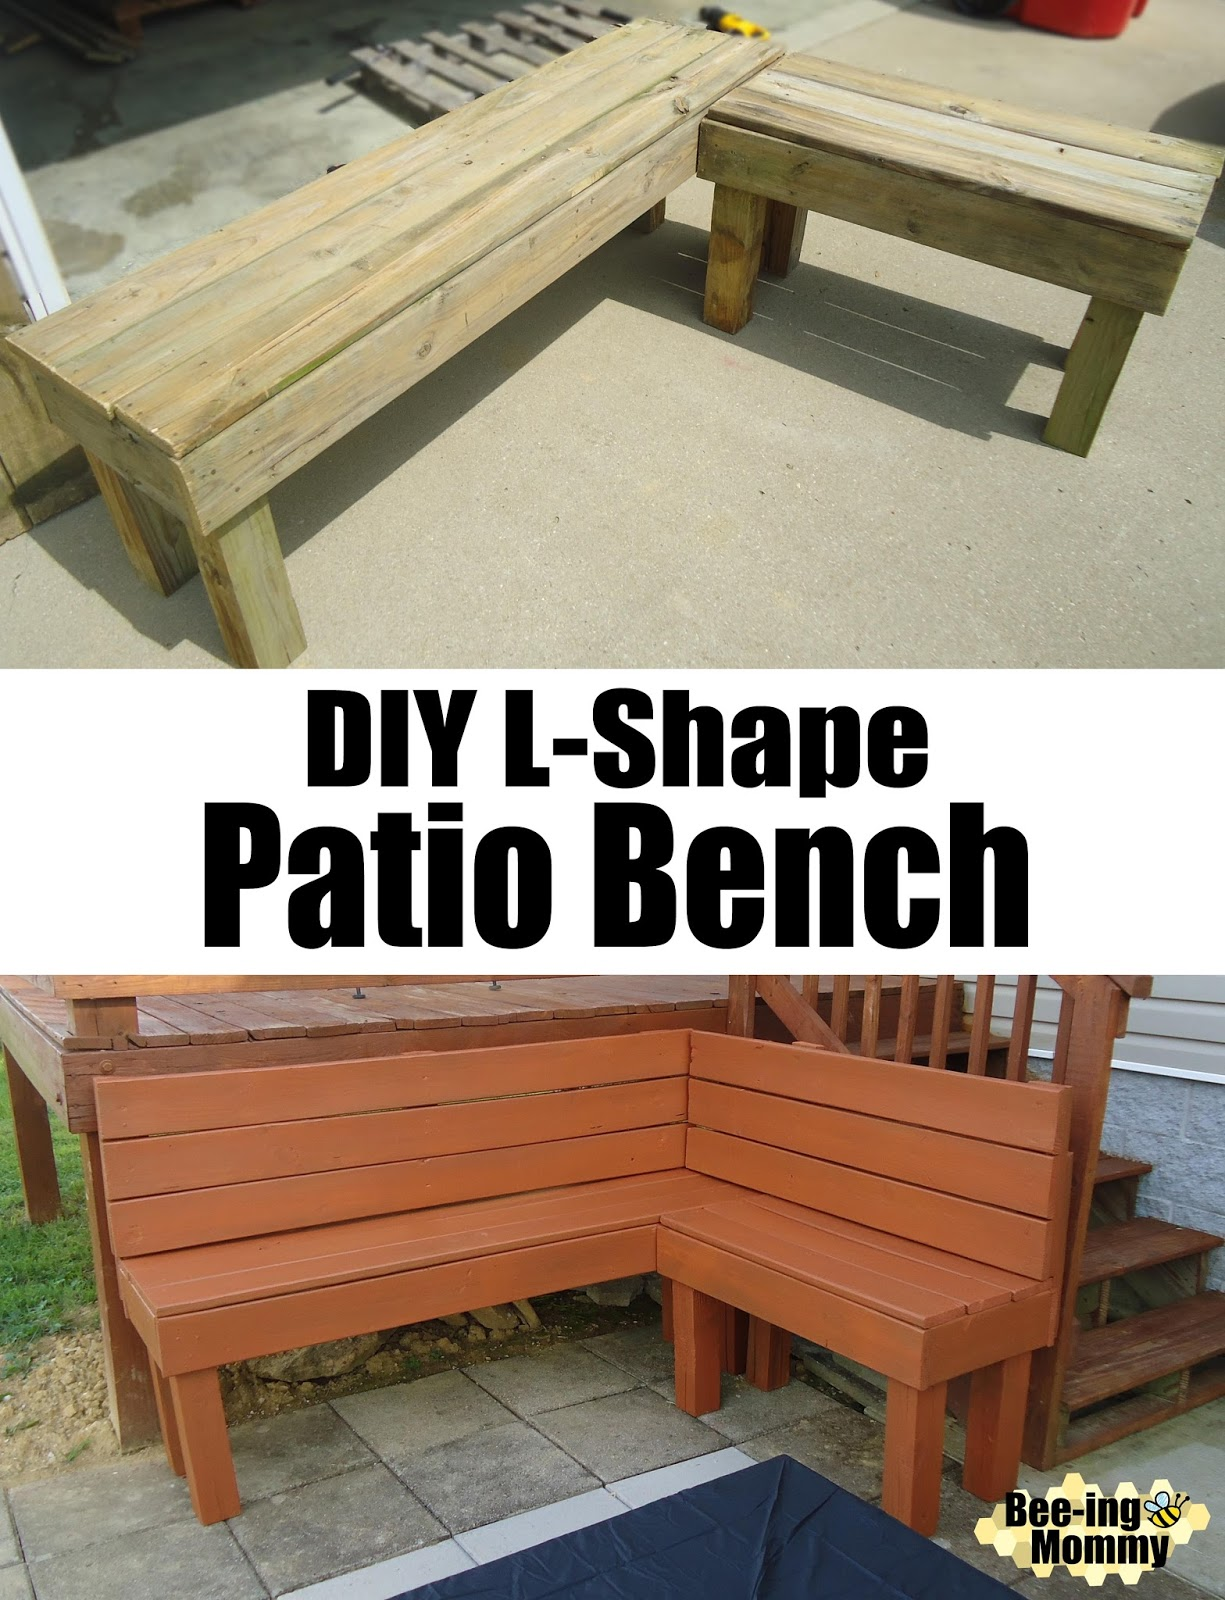 Making A Patio With Stones: DIY L-Shape Patio Bench